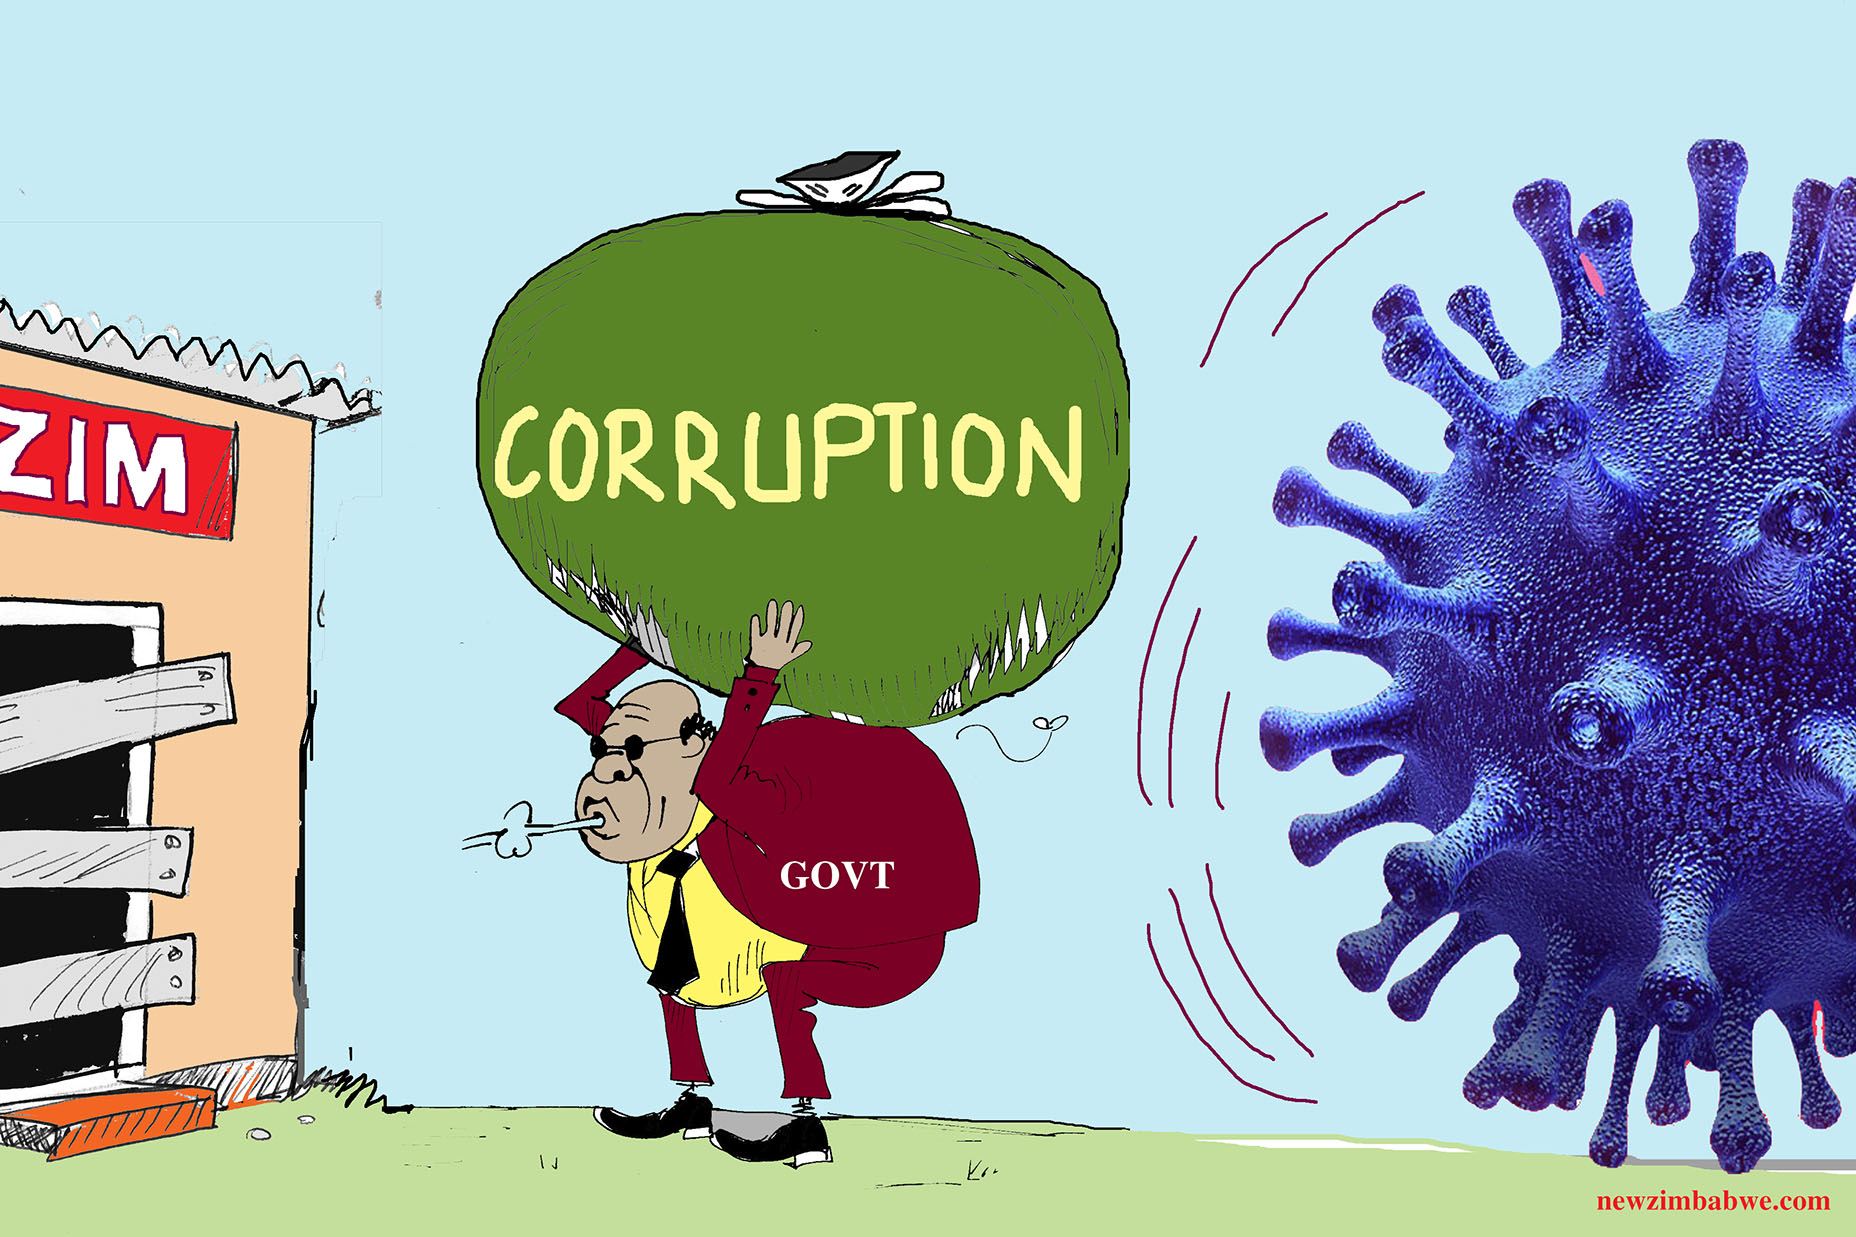 Of lockdown, corruption and COvid-19